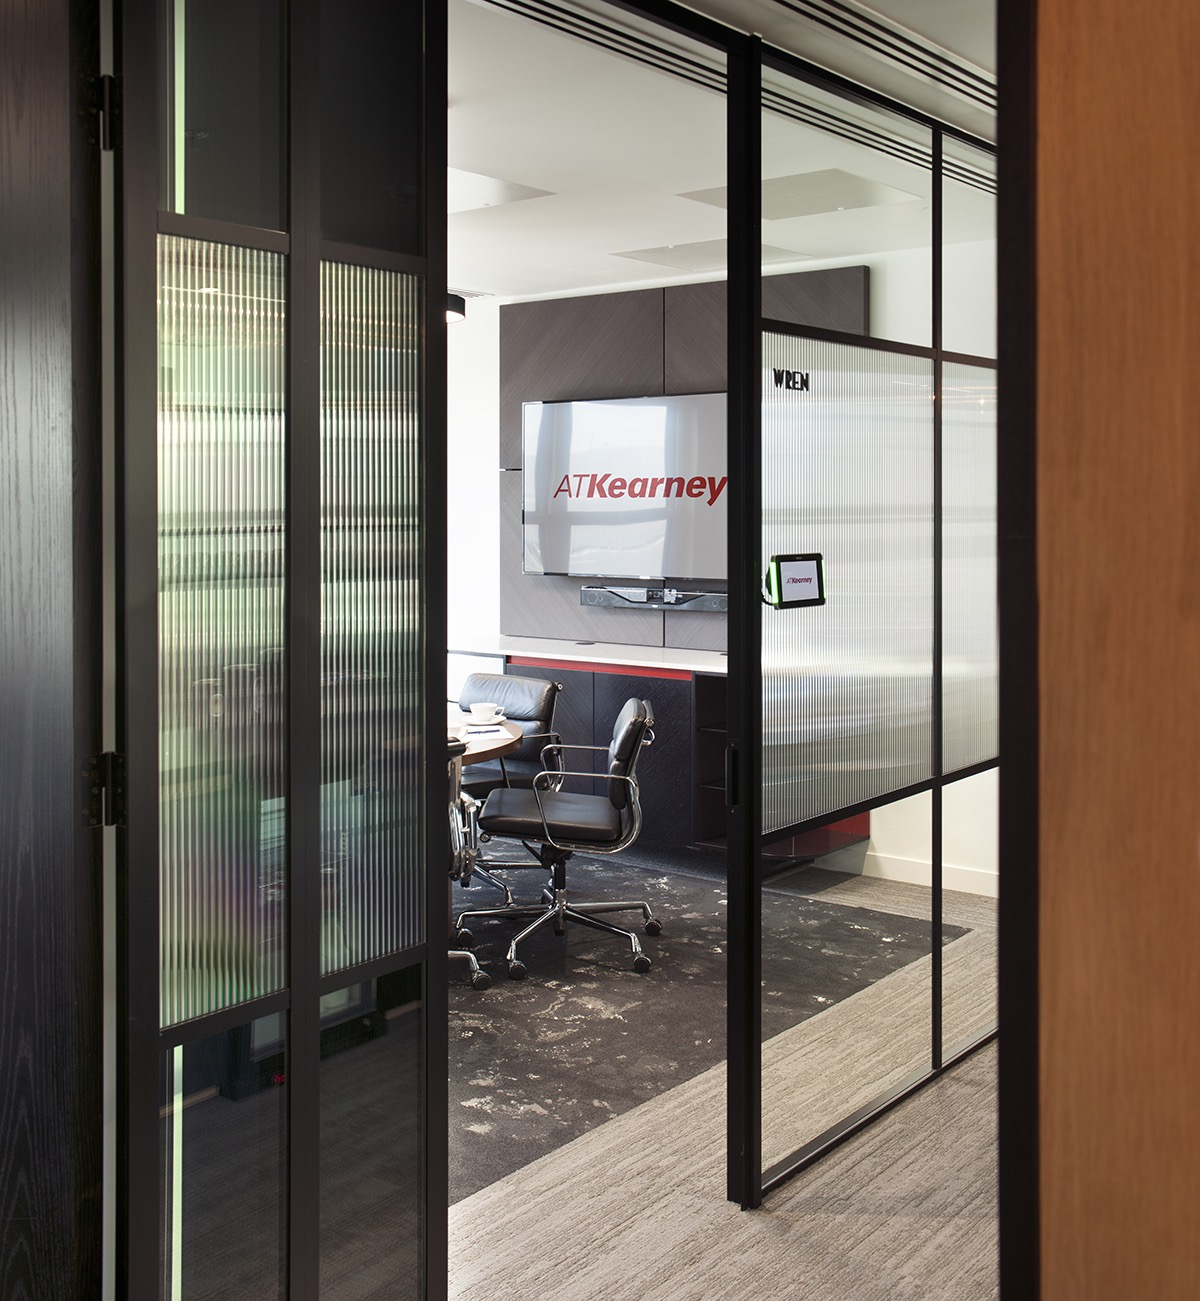 at-kearney-office-london-6